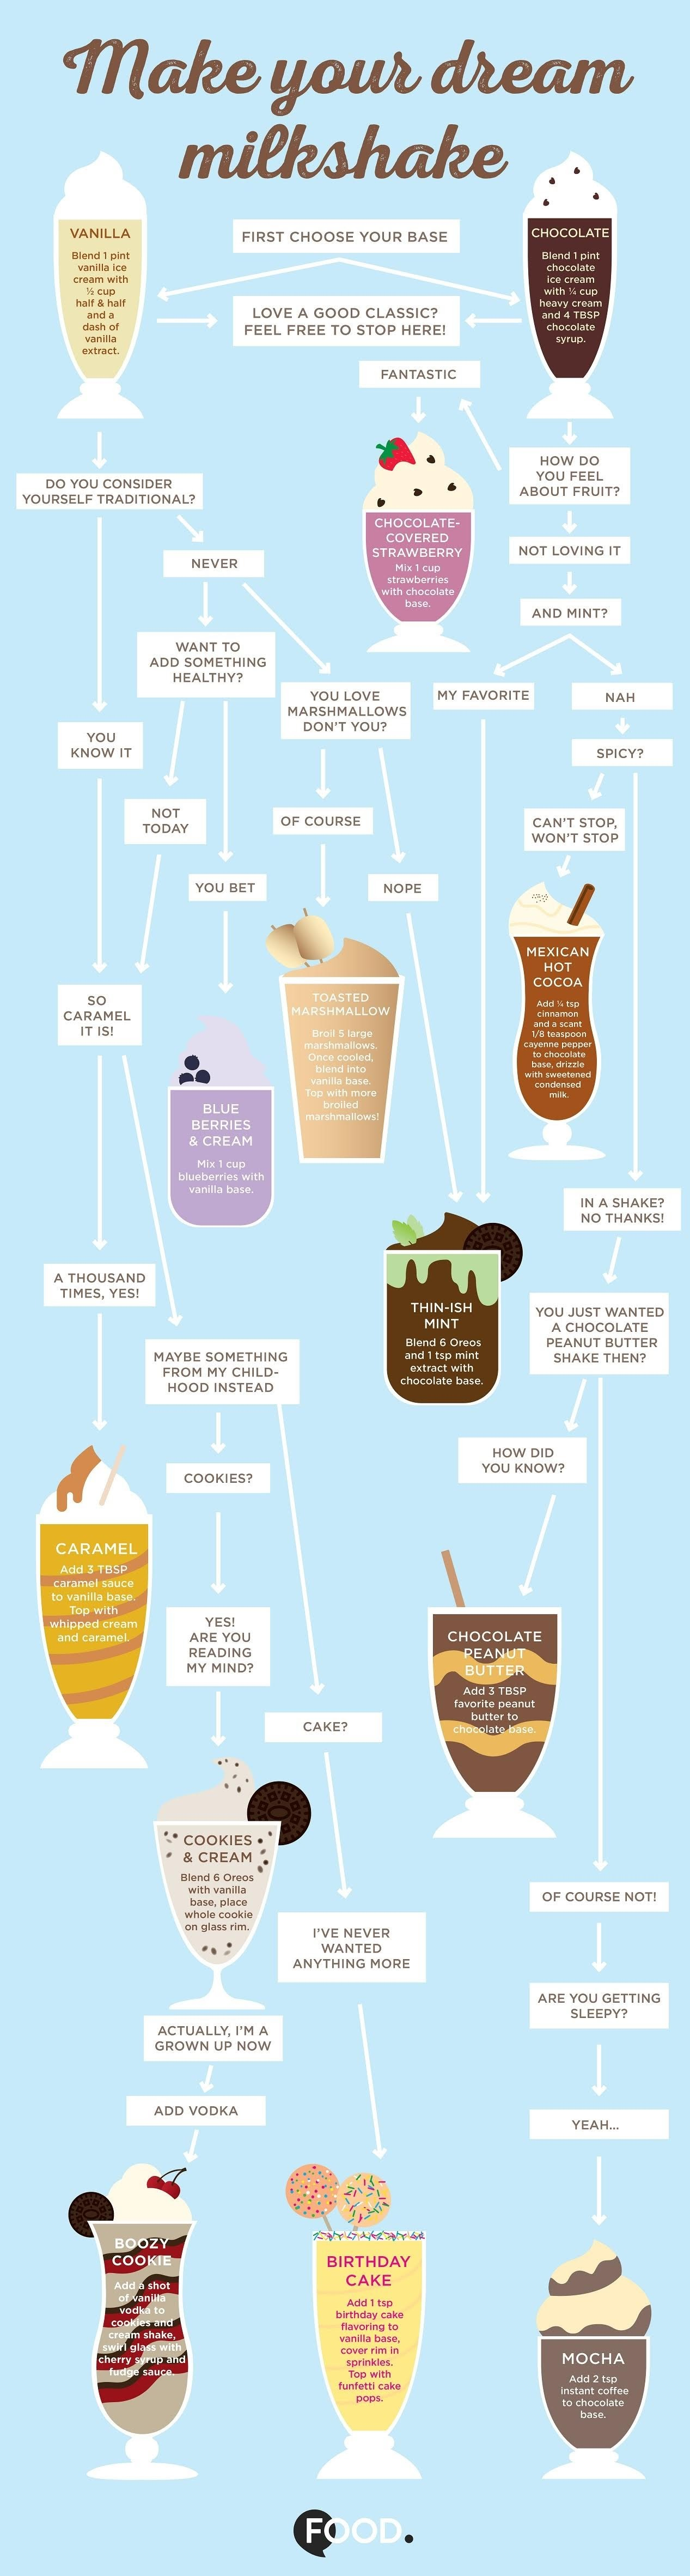 Make Your Dream Milkshake #infographic